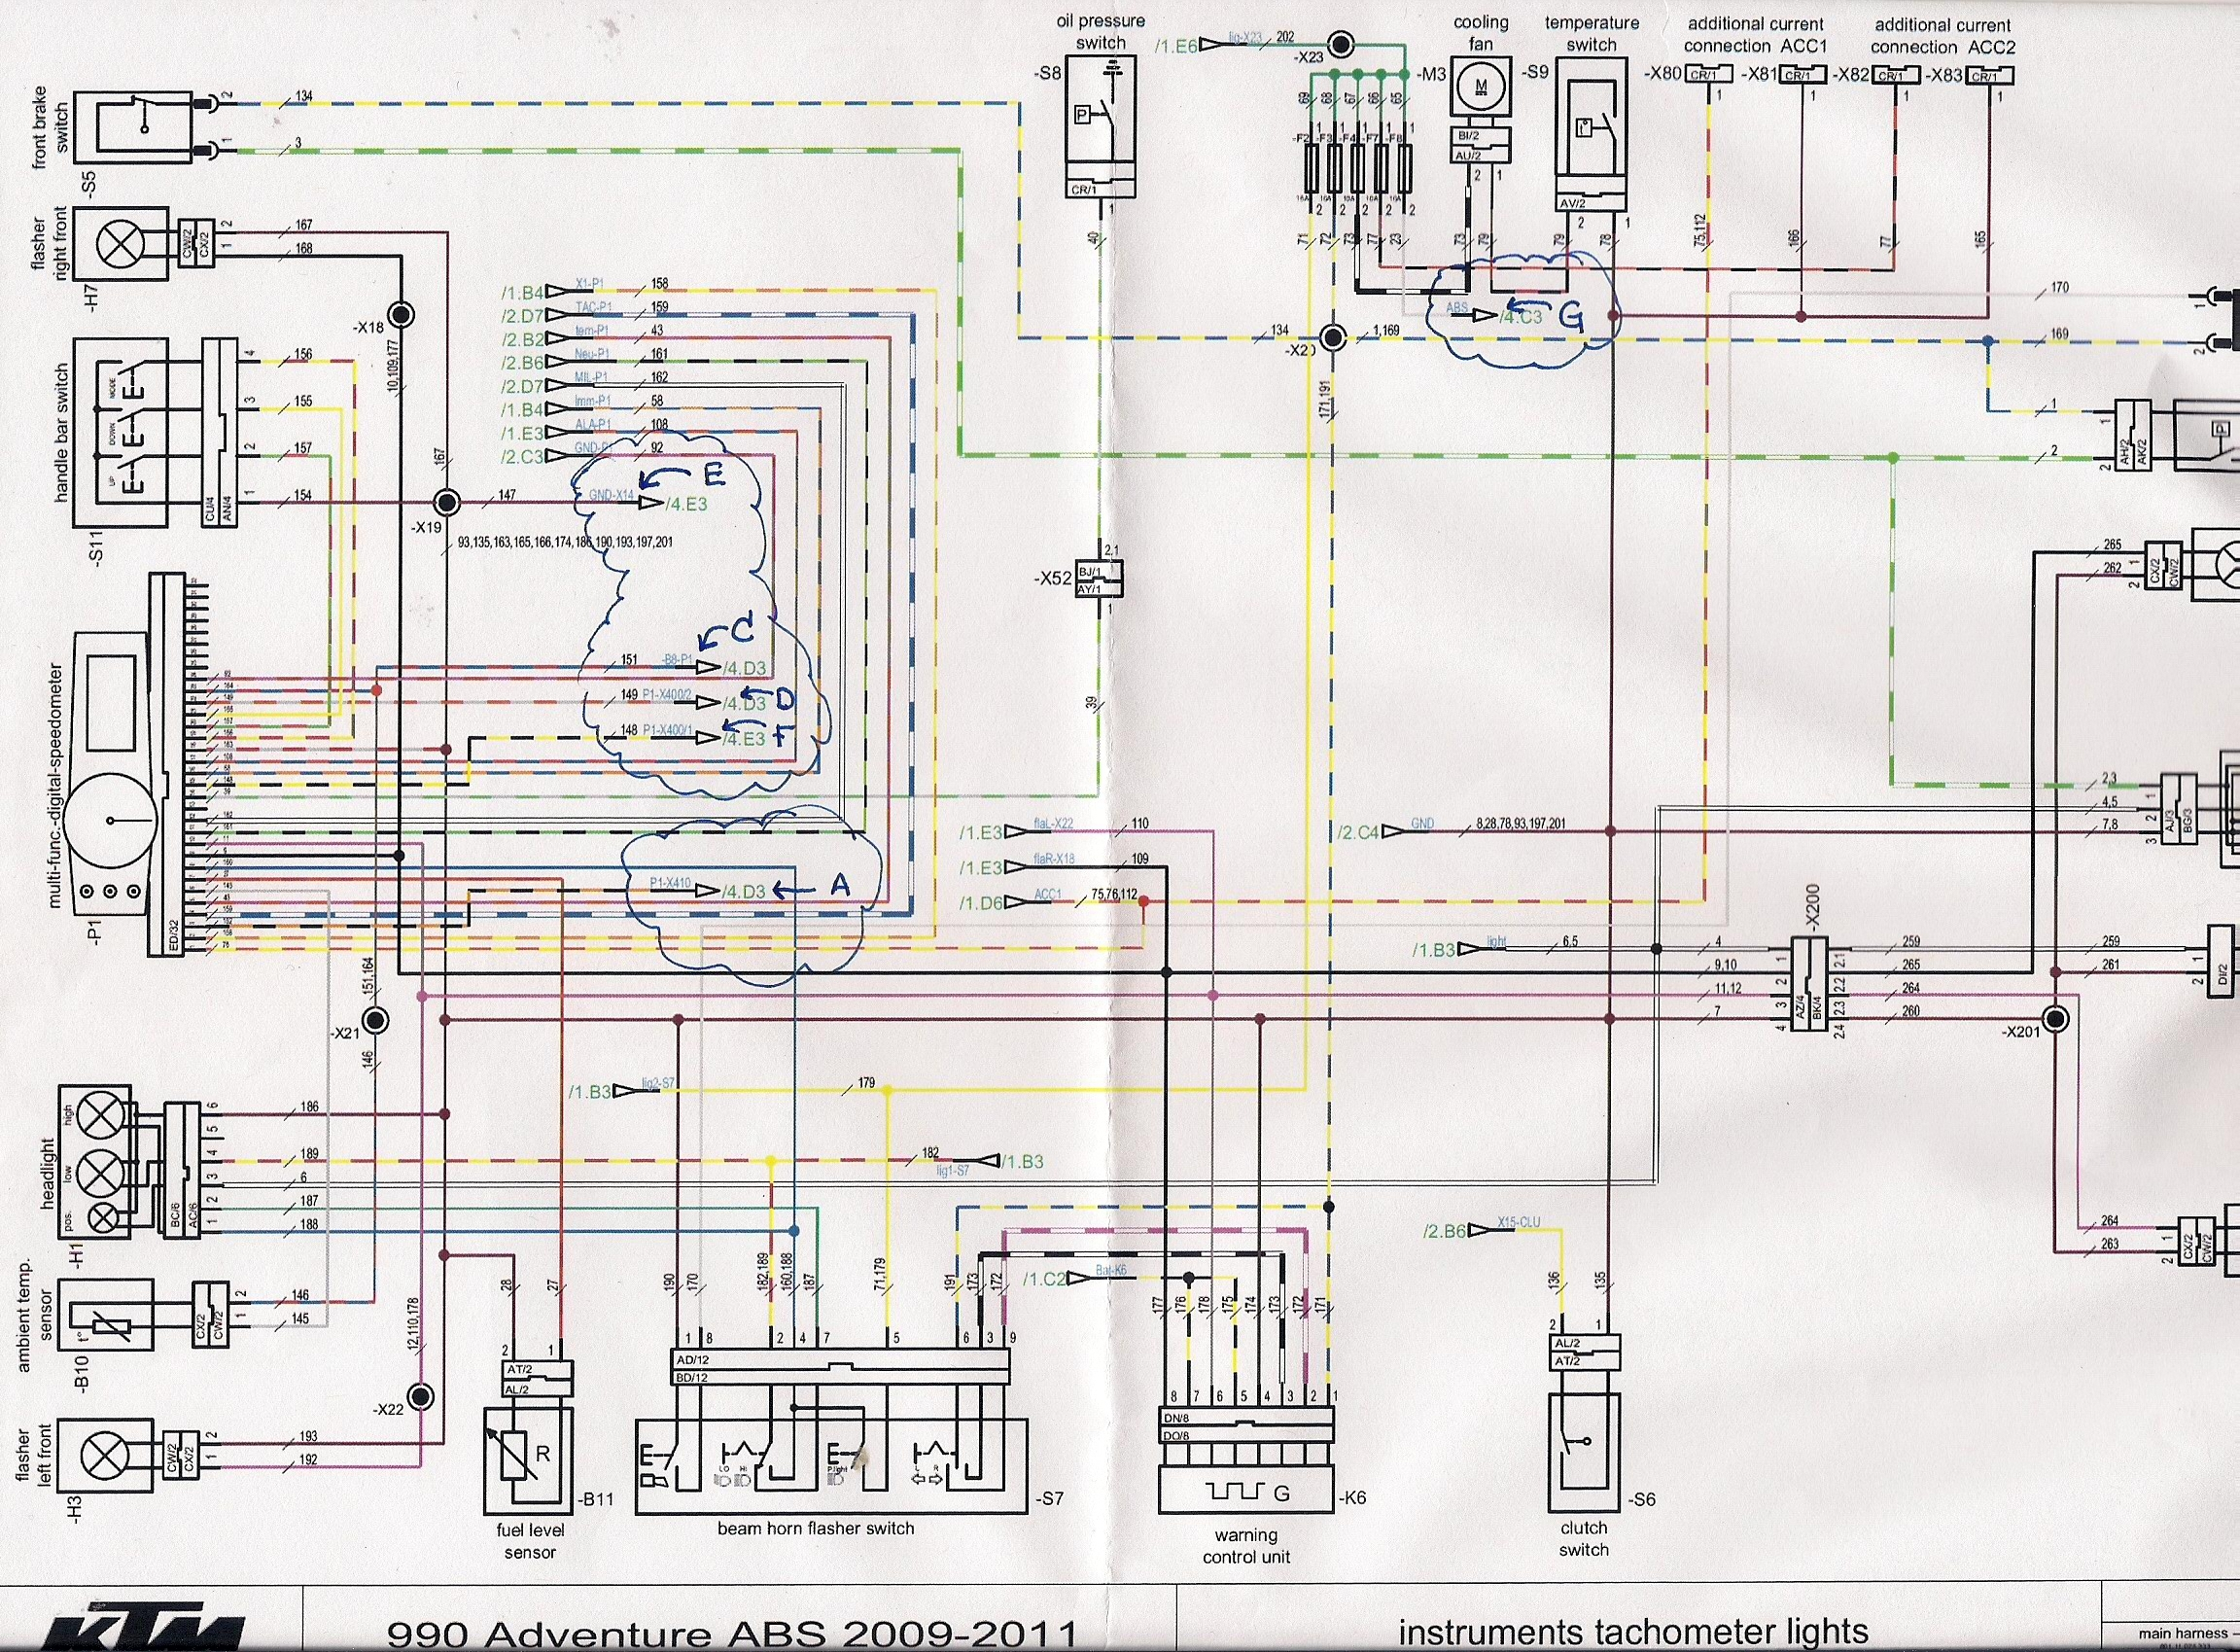 ktm 990 wiring diagram - wiring diagrams button school-breed -  school-breed.lamorciola.it  school-breed.lamorciola.it